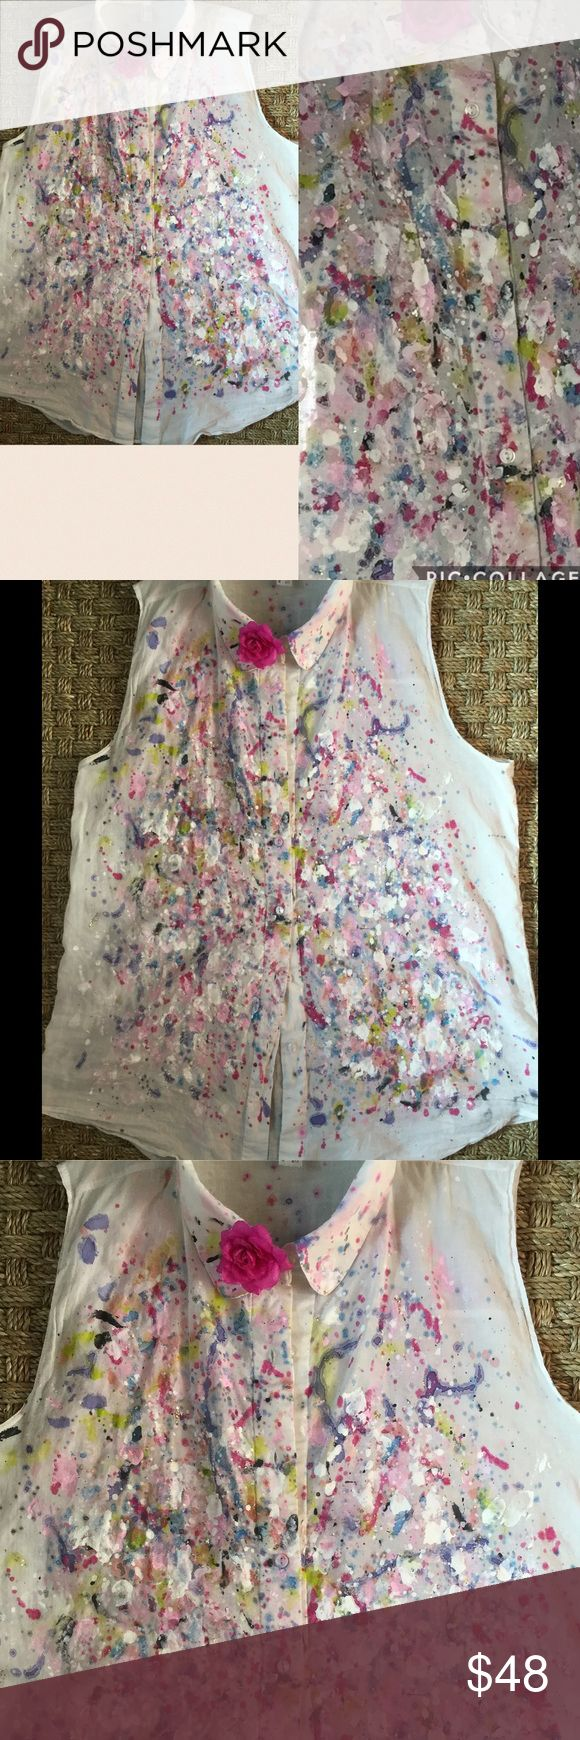 Custom painted American Apparel sleeveless top, ML Wear this, like this…custom artist painted white sleeveless cotton American Apparel top/tunic. Perfect for spring! Lightweight cotton, made in USA. Layers of paint create a beautiful one-of-a-kind effect. Colors include pastel pinks, white, deeper blue-violet, navy, fuchsia and chartreuse with some glitter-effect gold. Measures 22 inches under arm (flat) and approx 30 inches from shoulder to longest point of hem. Can also work as a bathing…